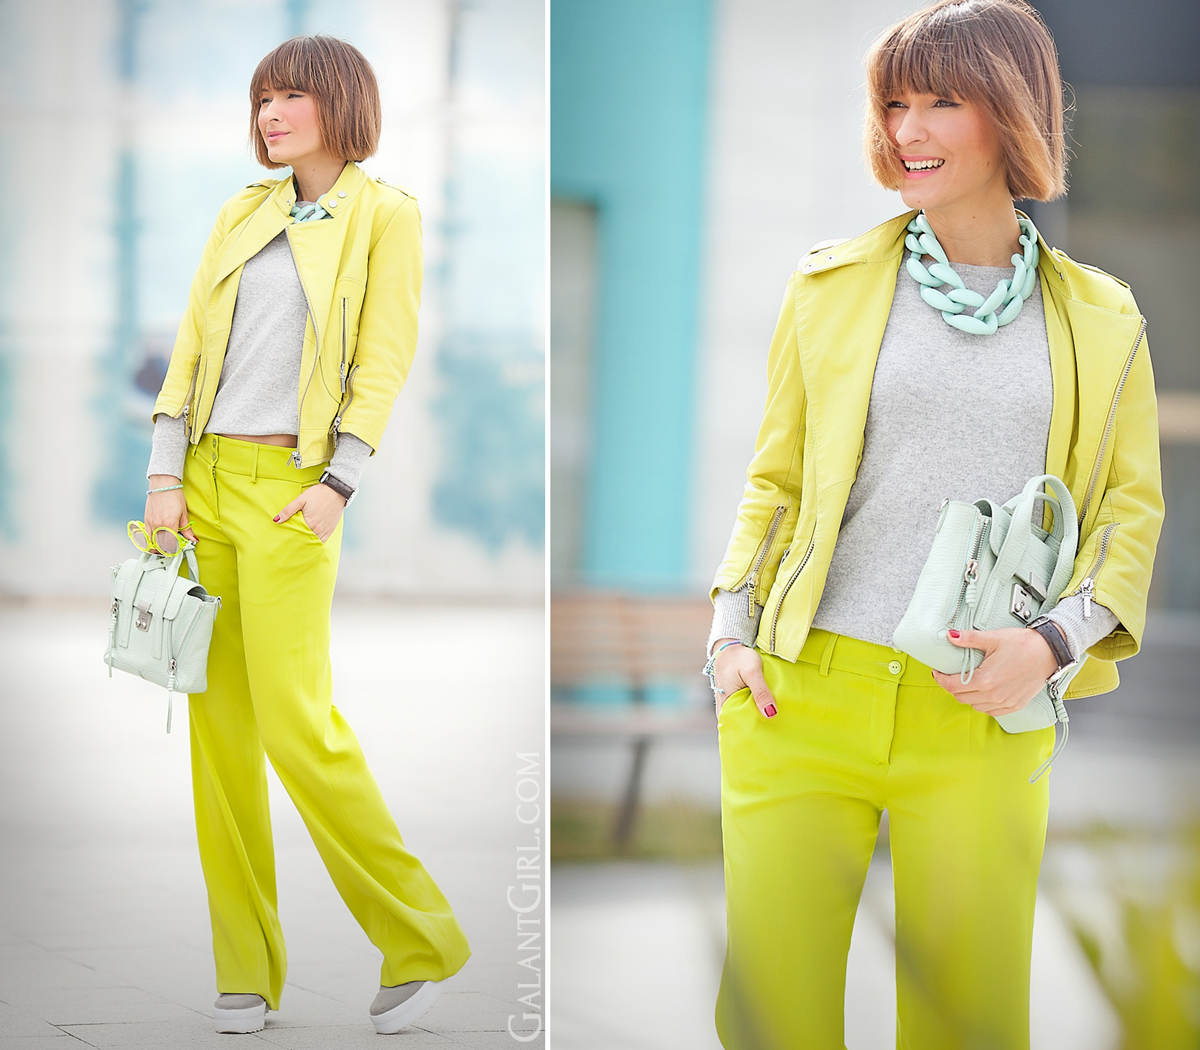 lime green colors outfit for spring on GalantGirl.com